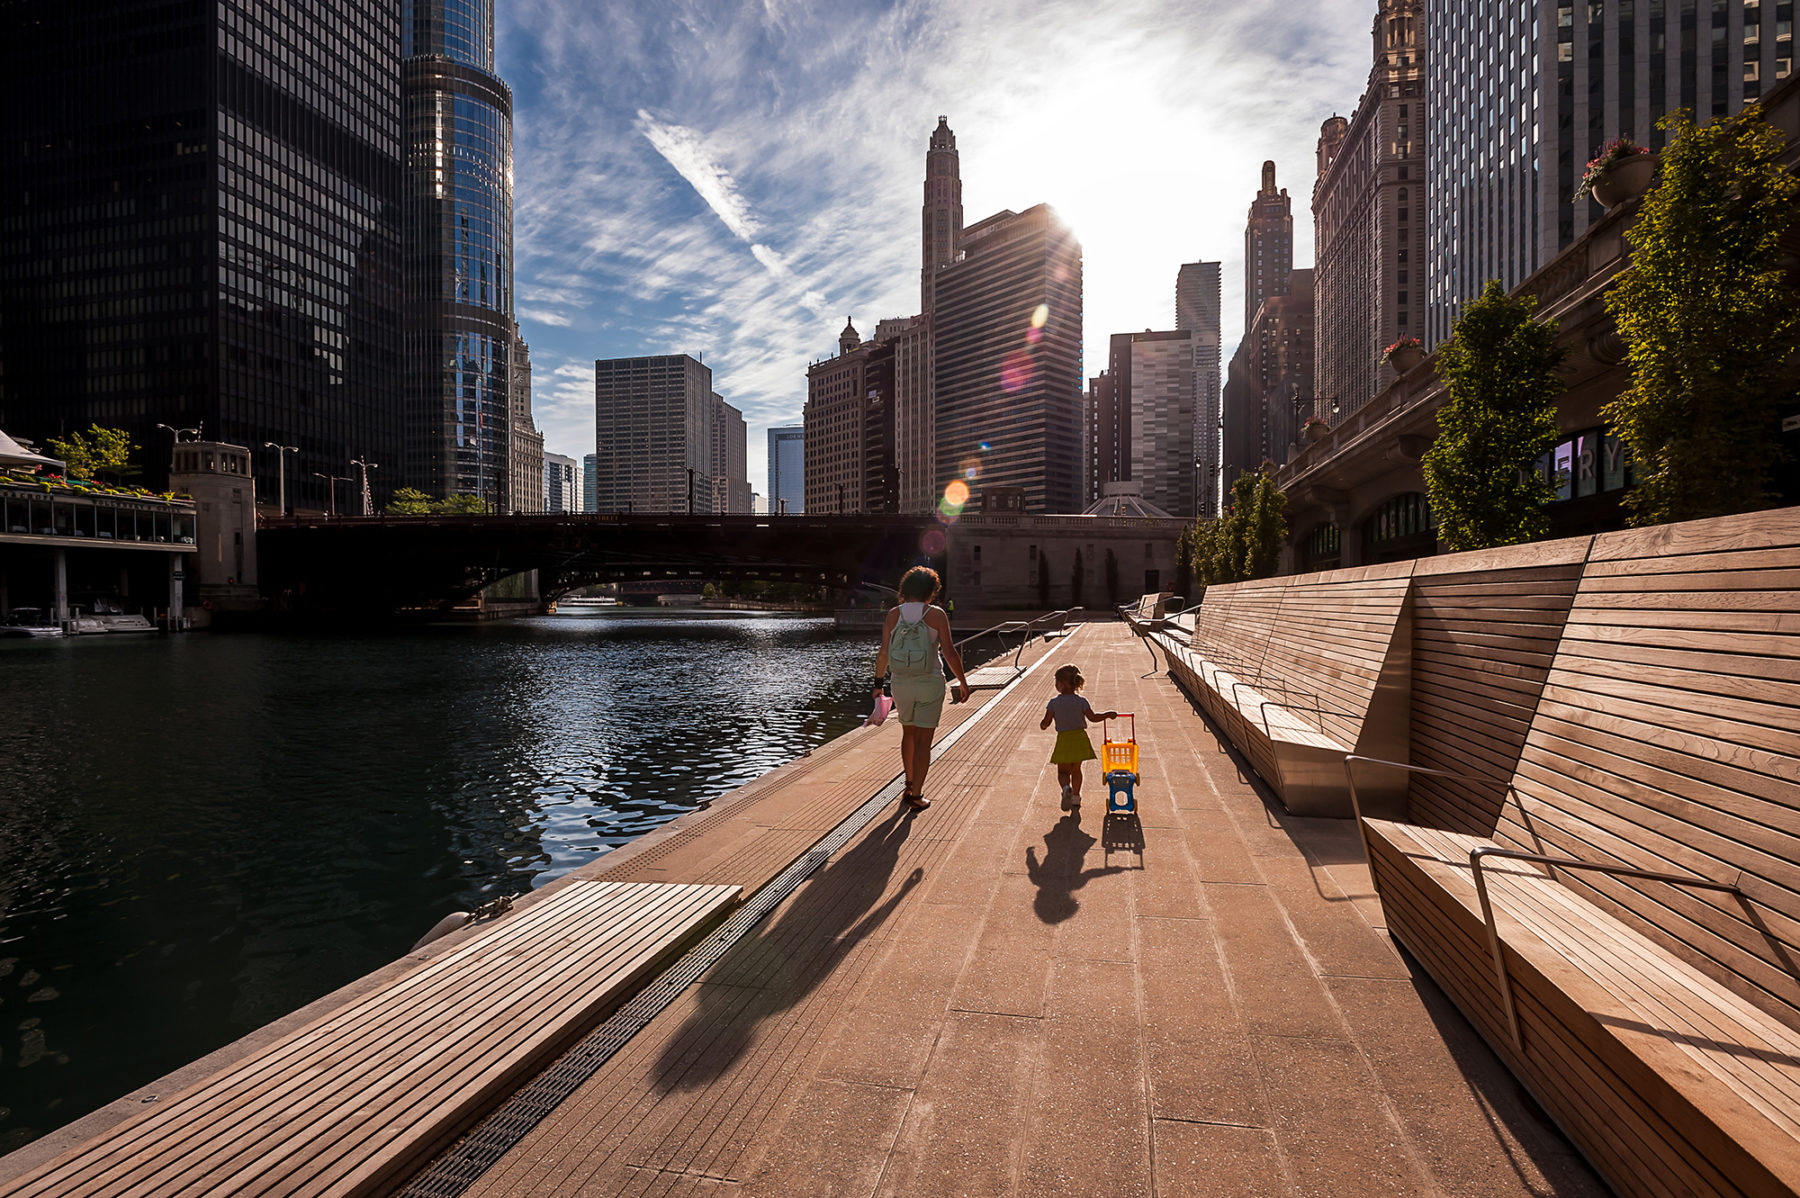 Image of people walking on chicago riverwalk